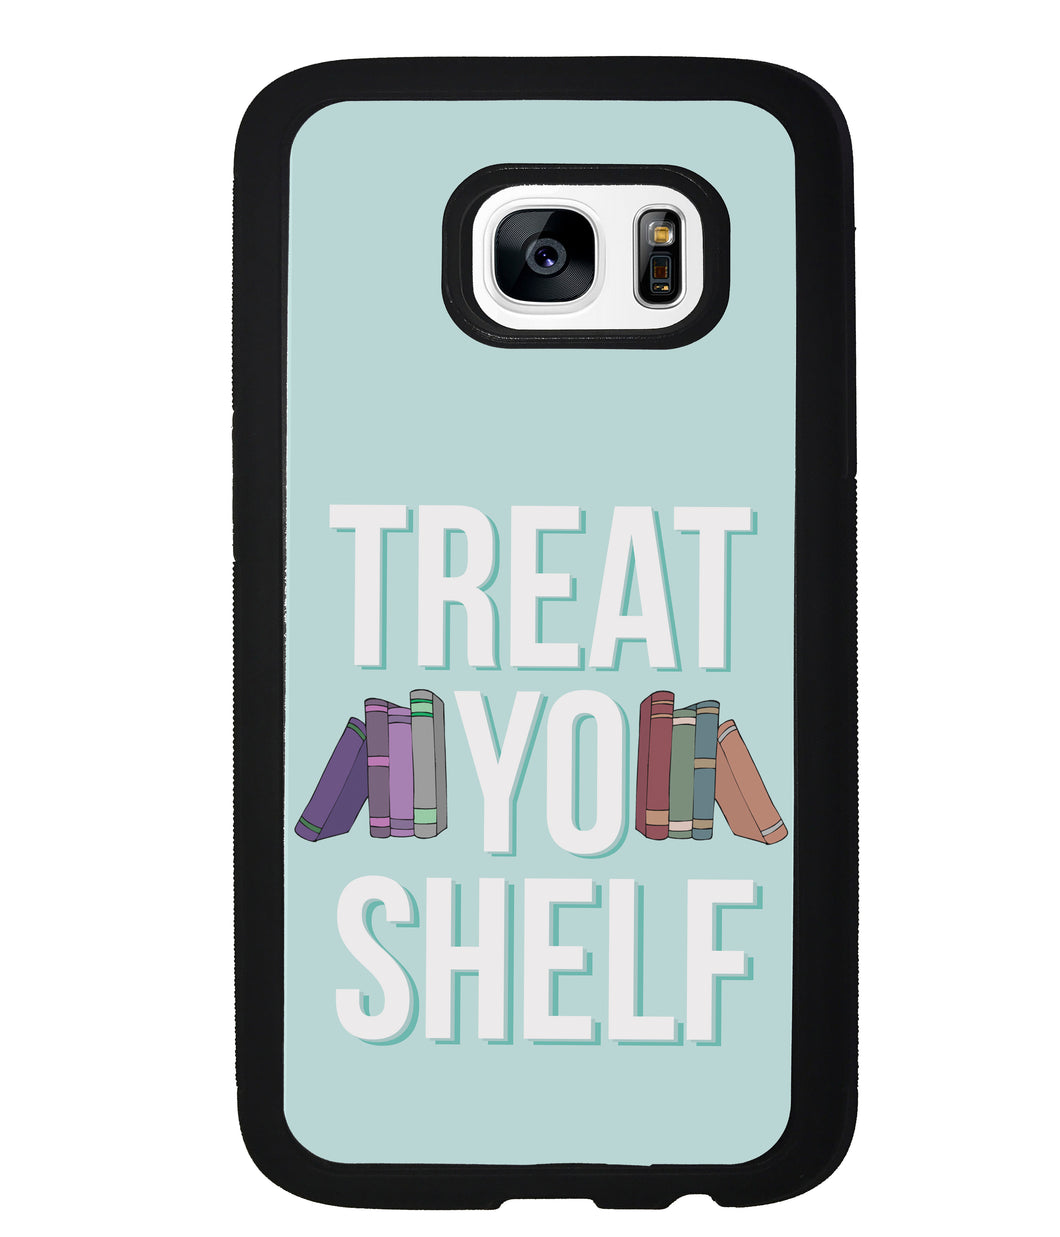 Treat Yo Shelf | Samsung Phone Case